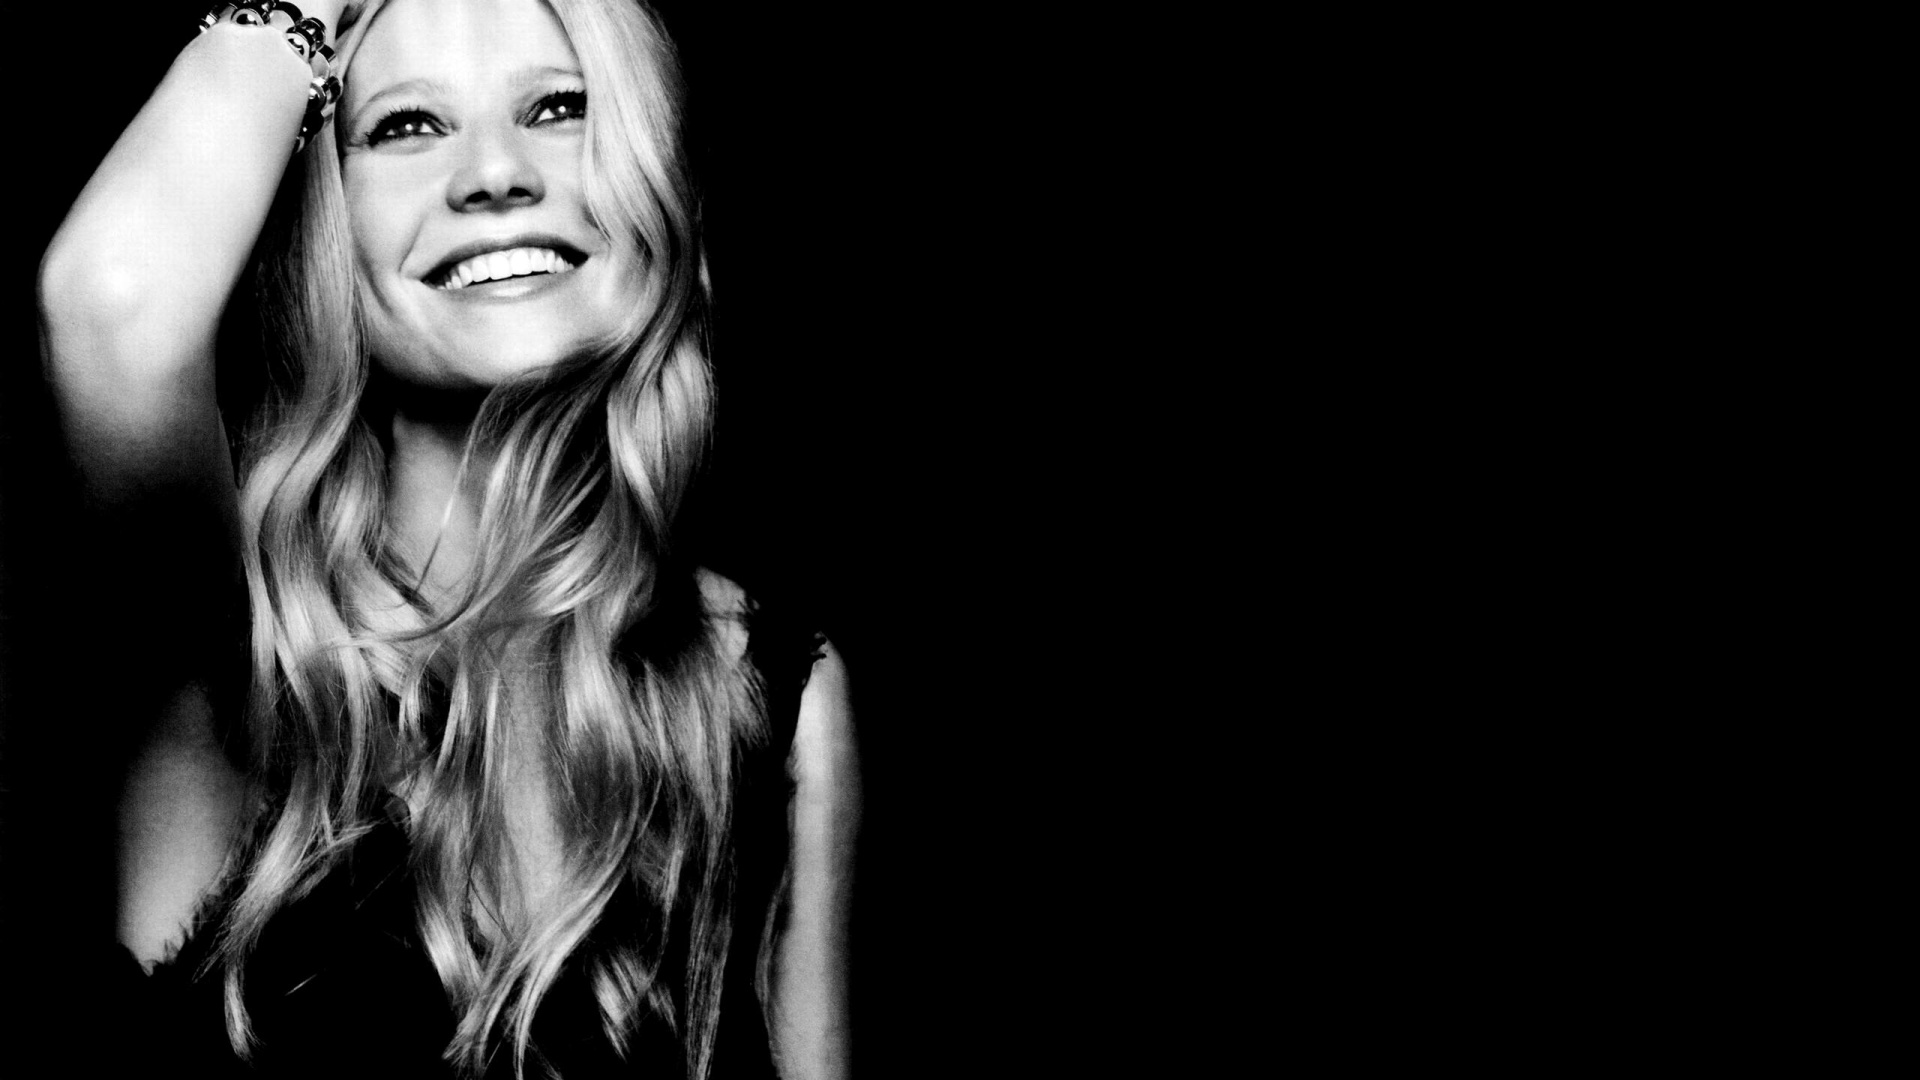 Gwyneth Paltrow Cute HD Wallpaper